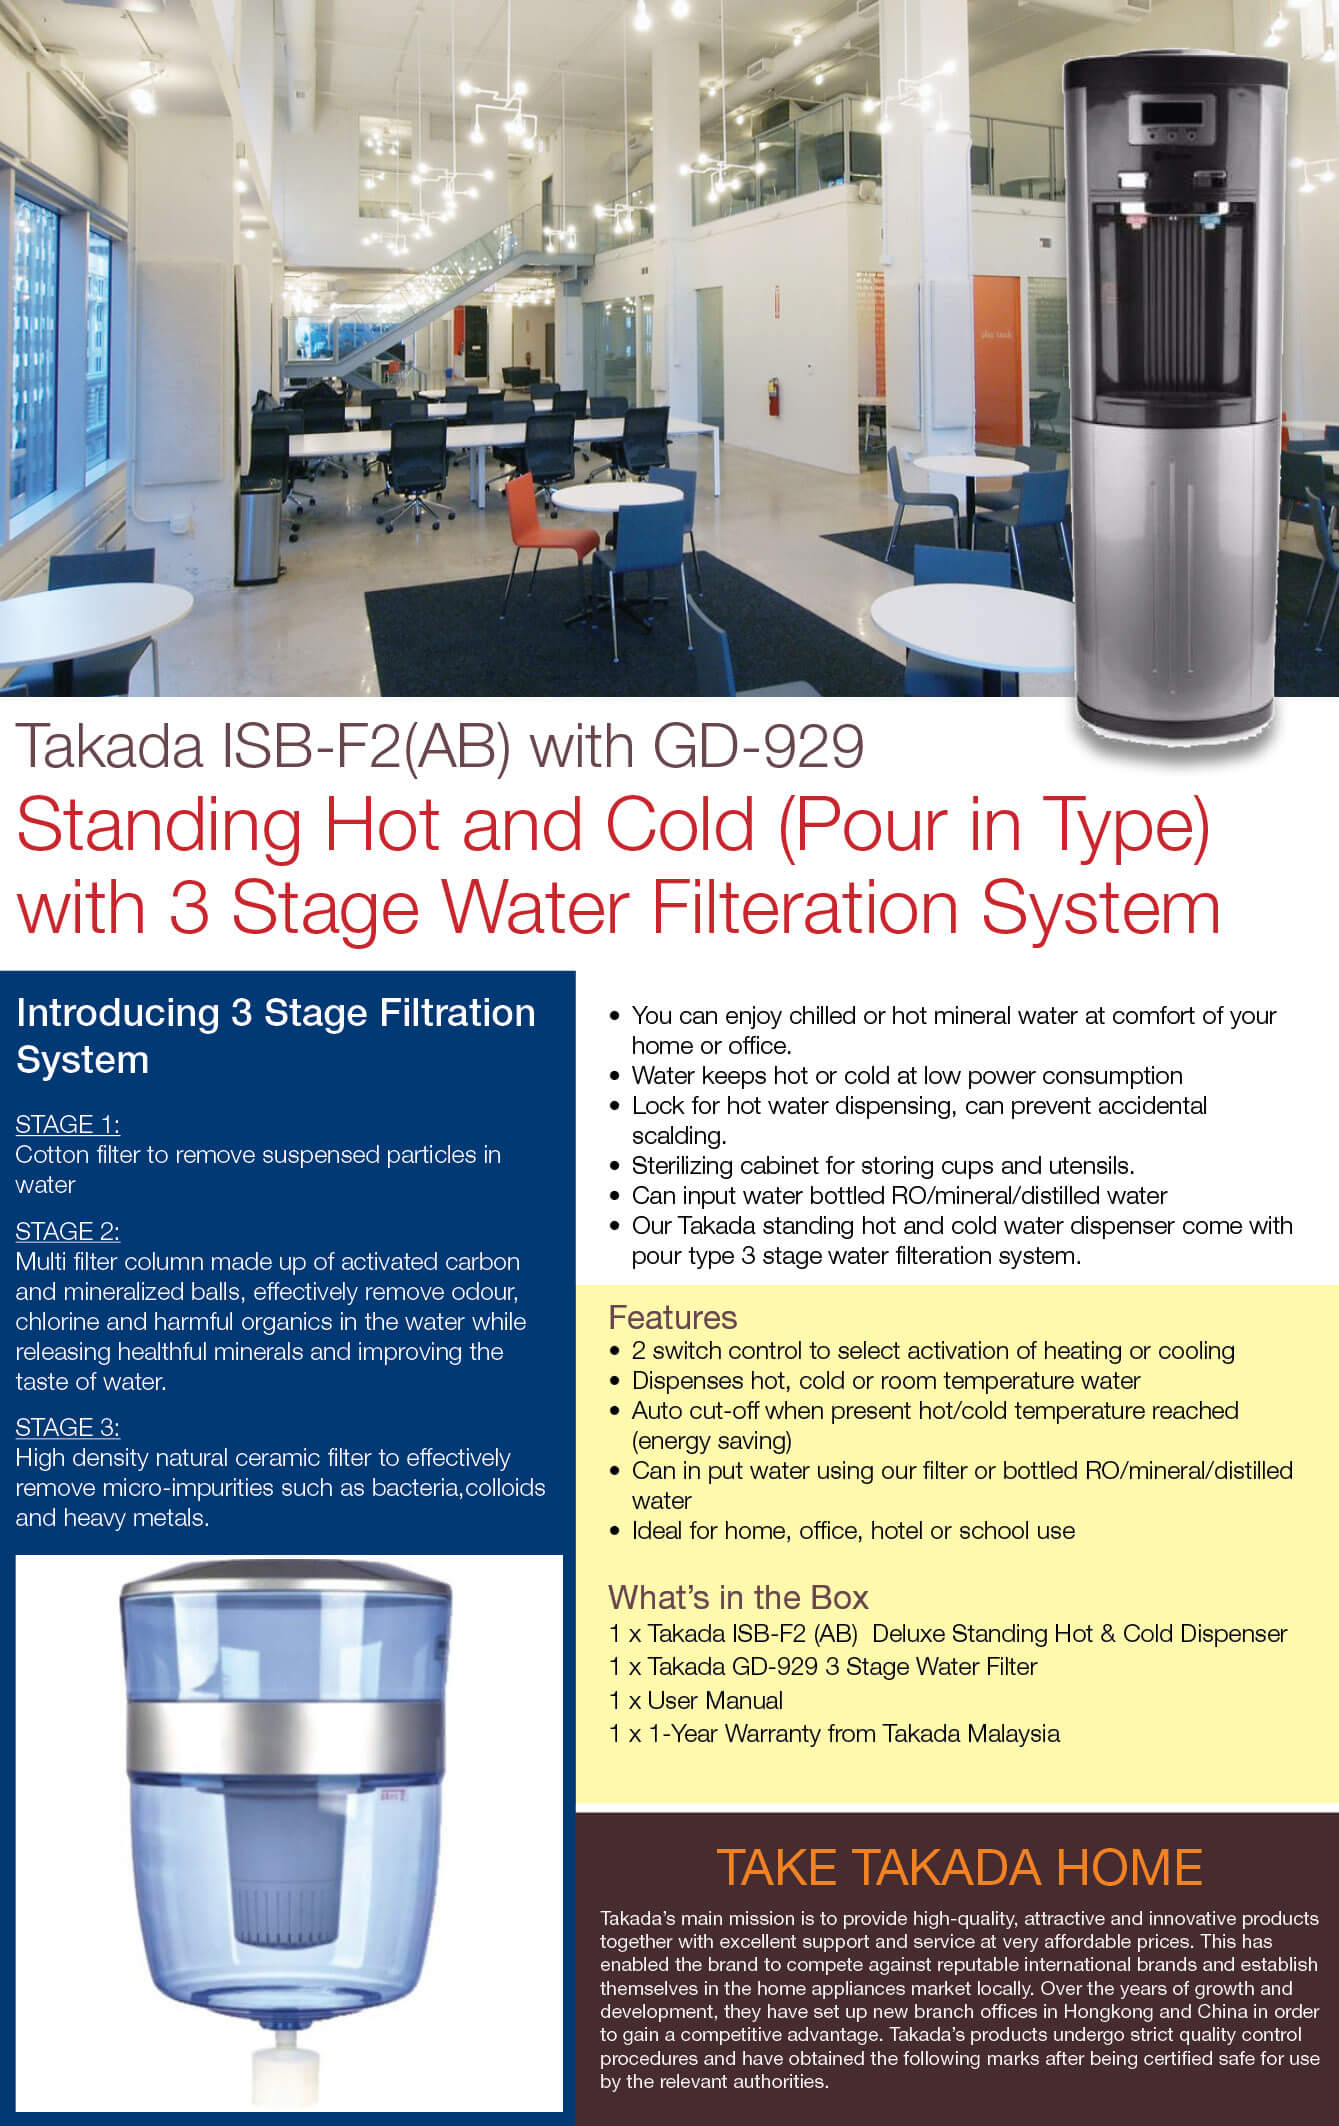 Takada-ISB-F2(AB)-with-GD-929-Standing-Hot-and-Cold-with-3-Stage-Water-Filteration-System